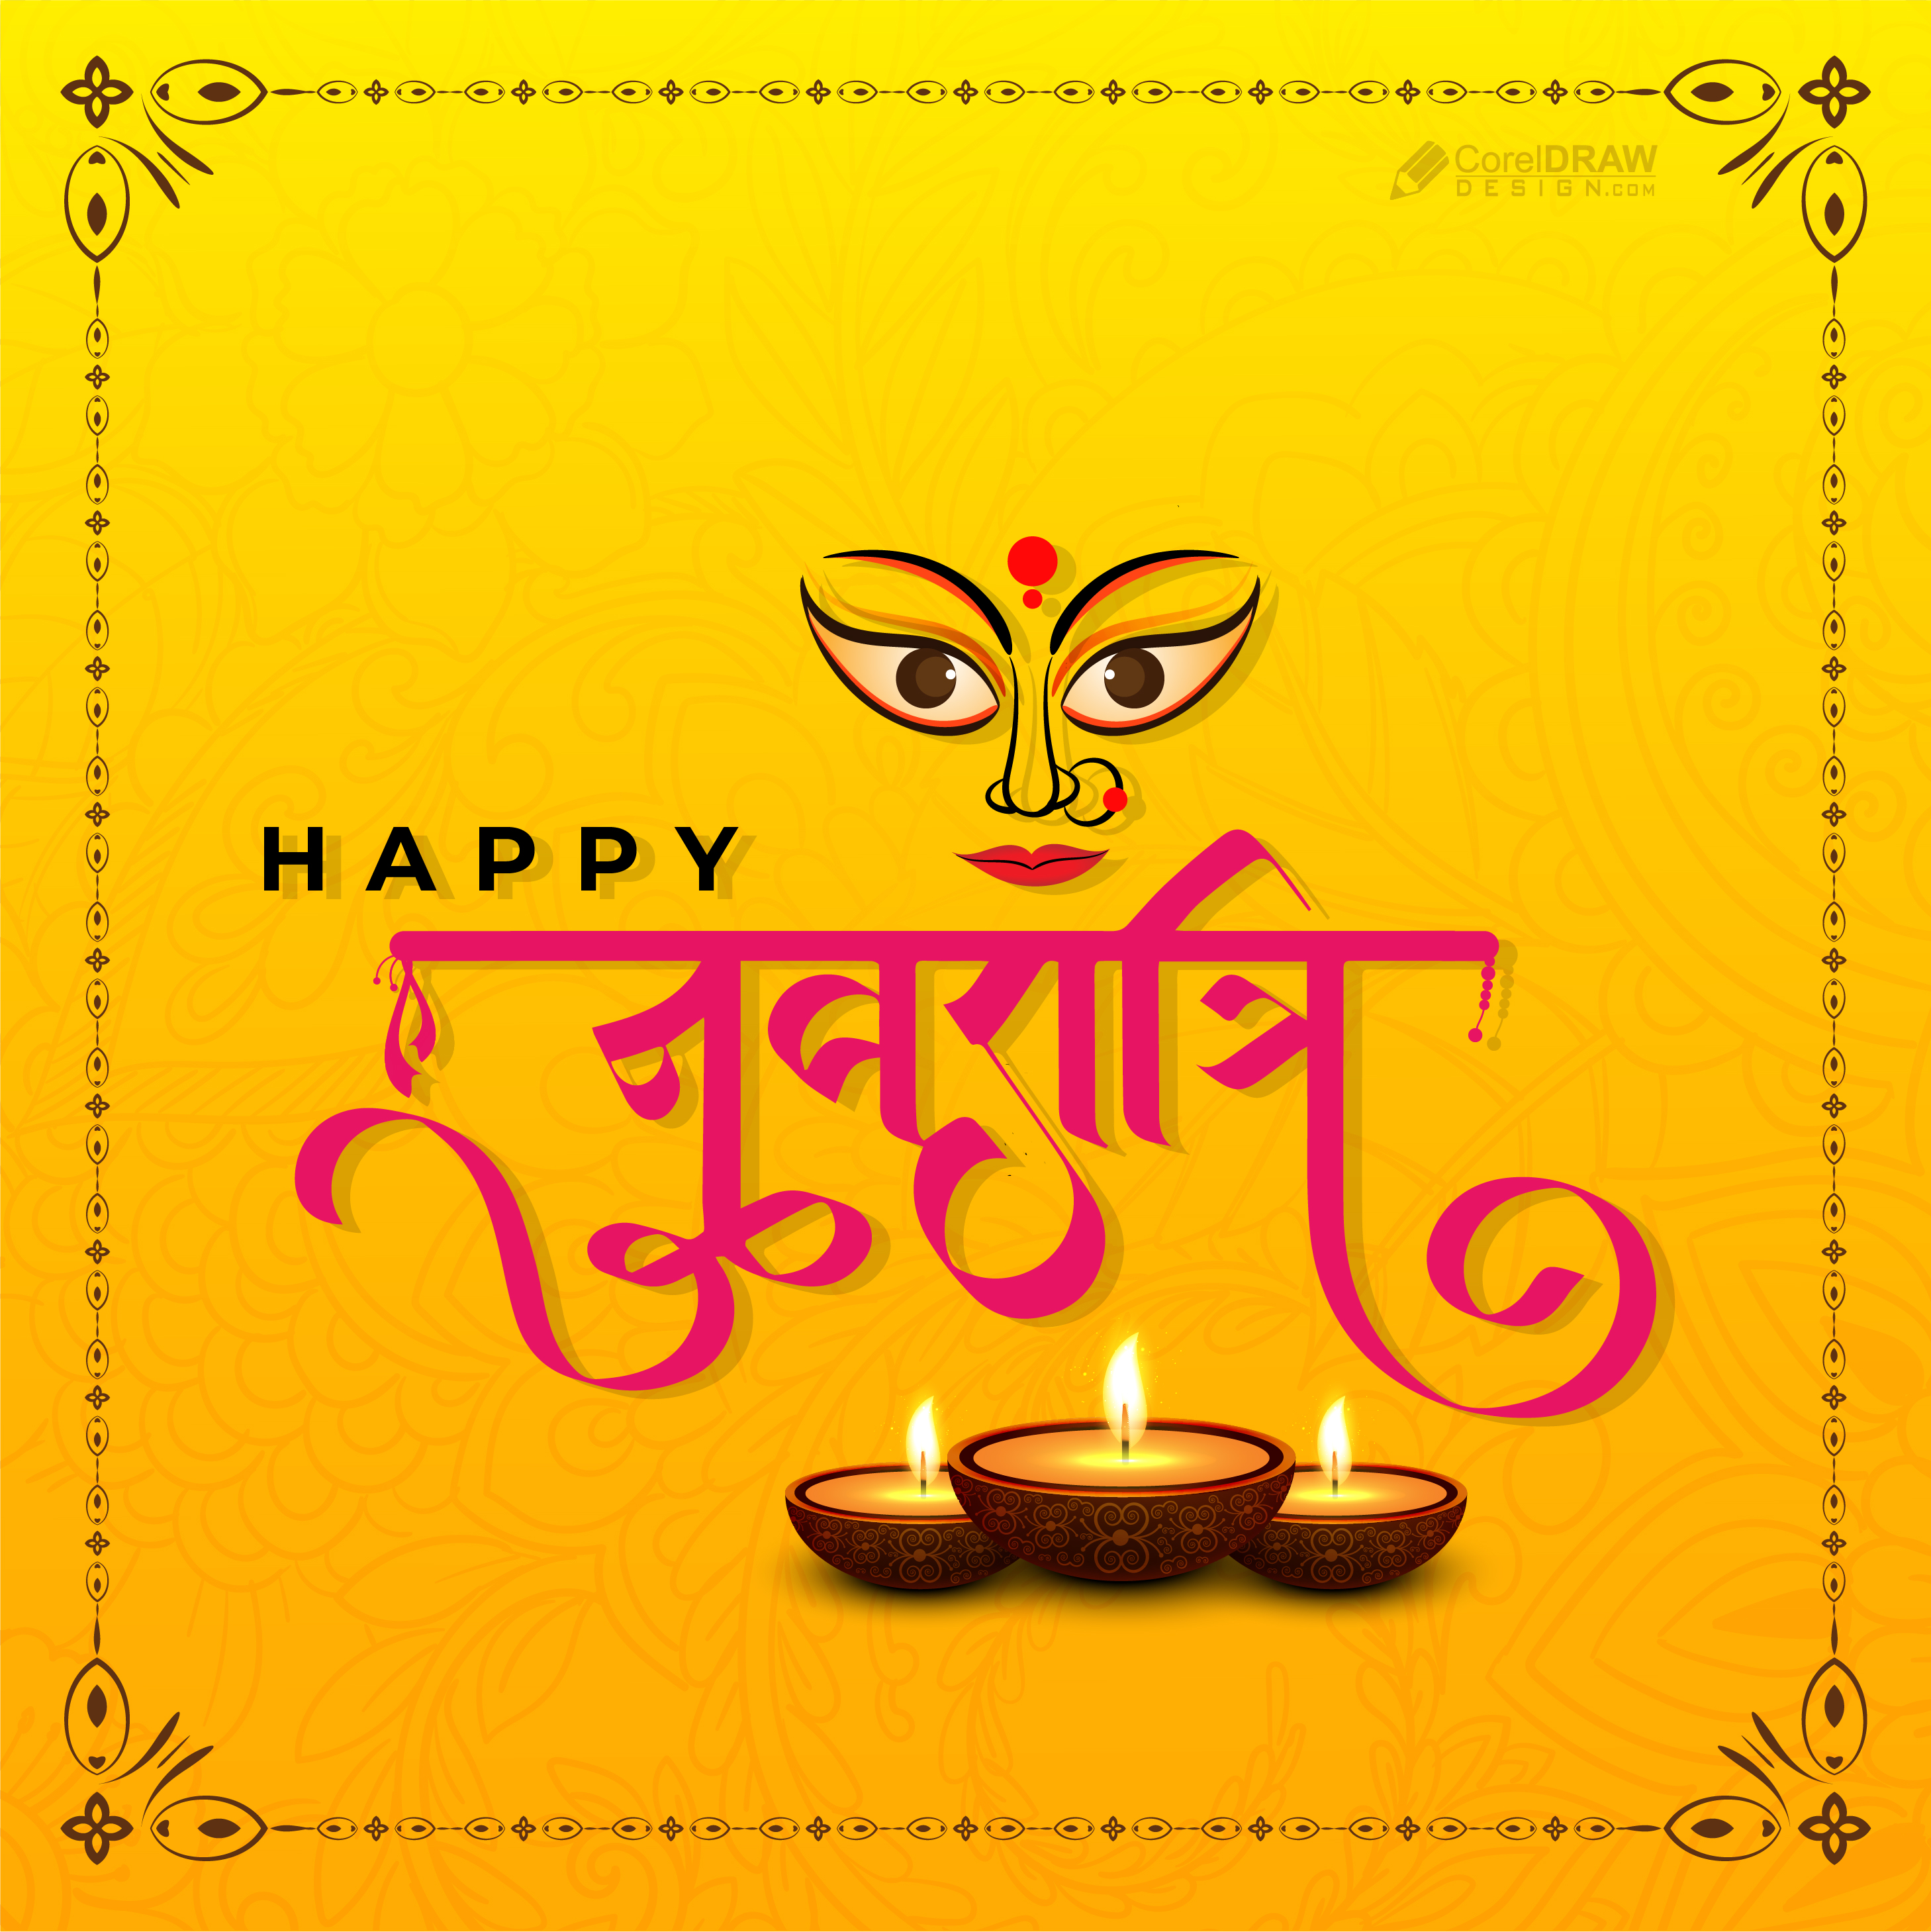 Happy Navratri Ethnic Cultural Indian  Festival Background Wishes Card